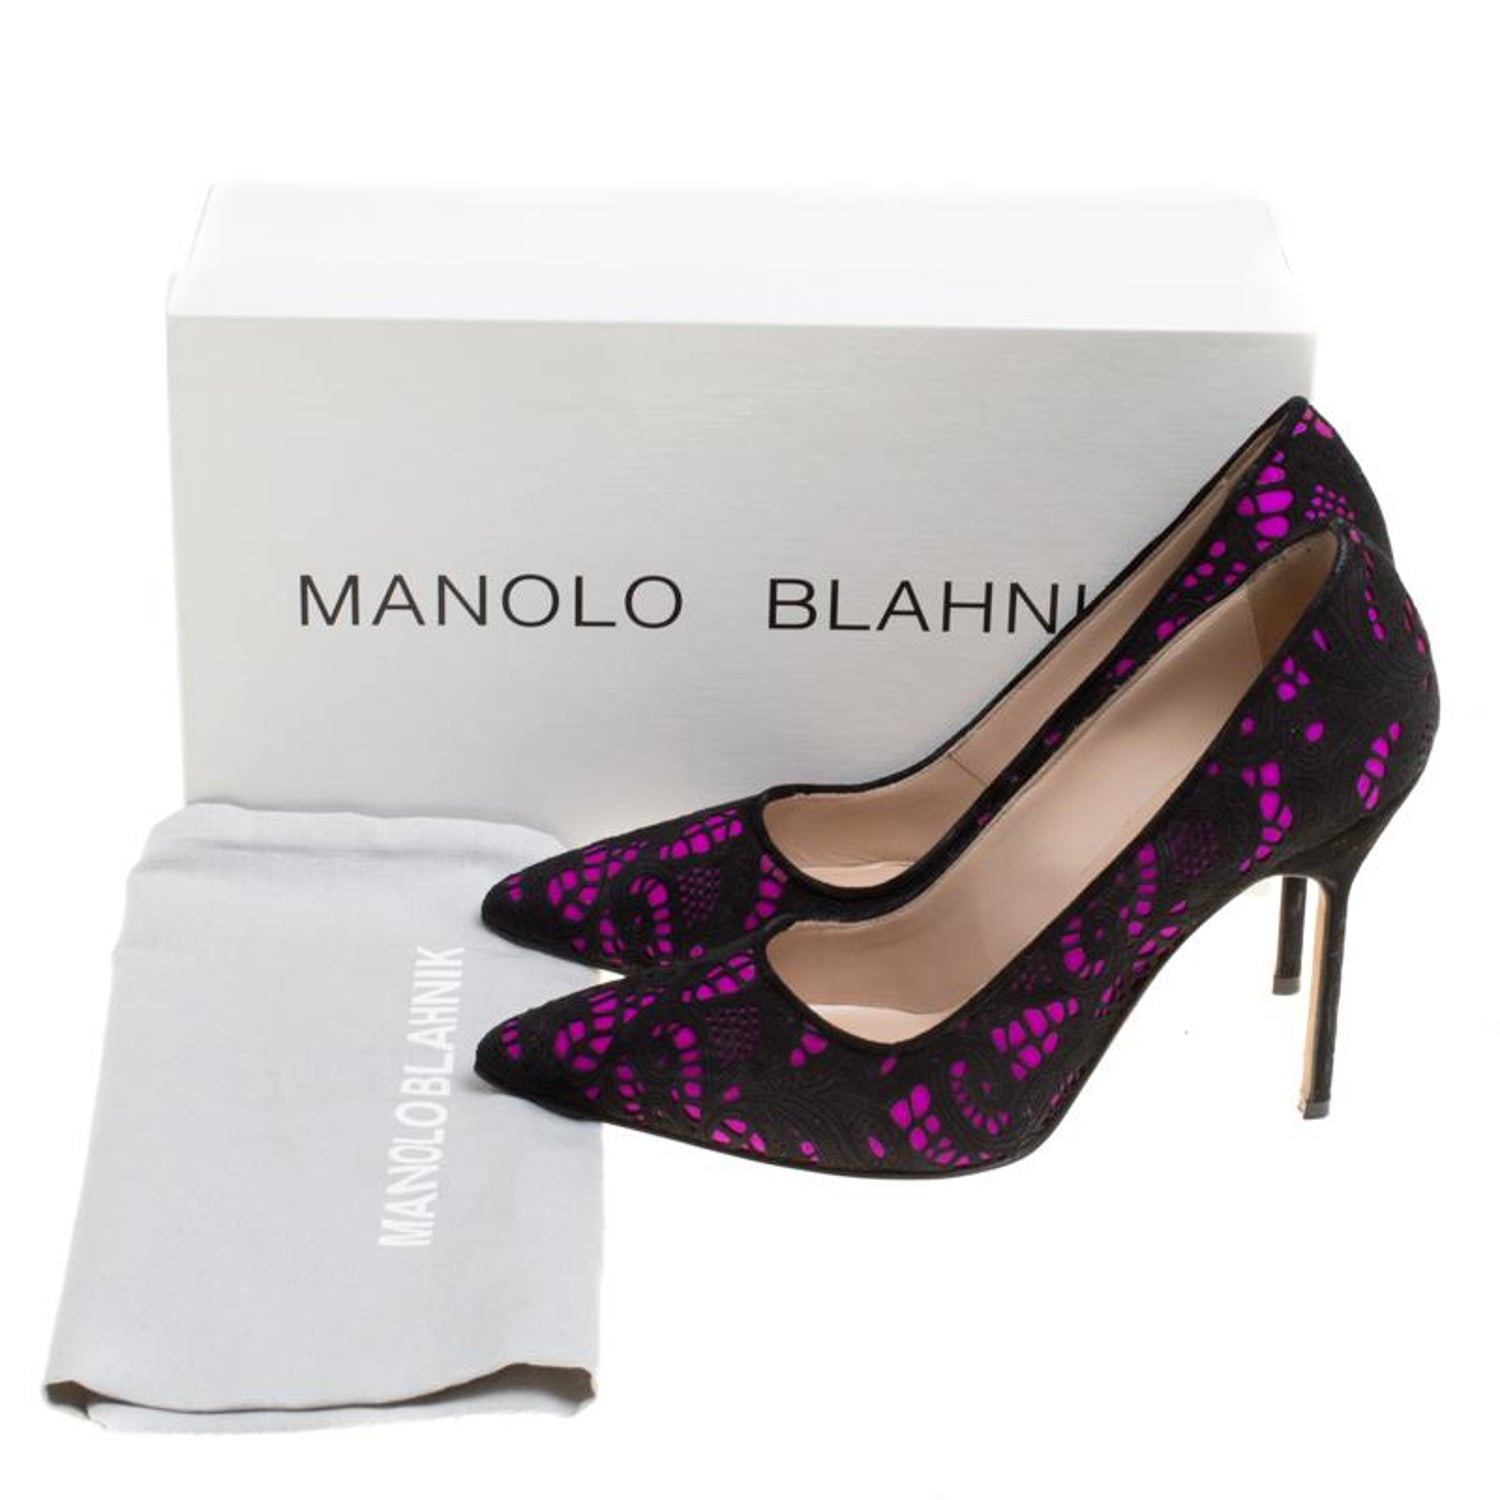 ff32fa3e30 Manolo Blahnik Hot Pink Satin With Laser Cut Suede Bborli Pointed Toe Pumps  Size at 1stdibs